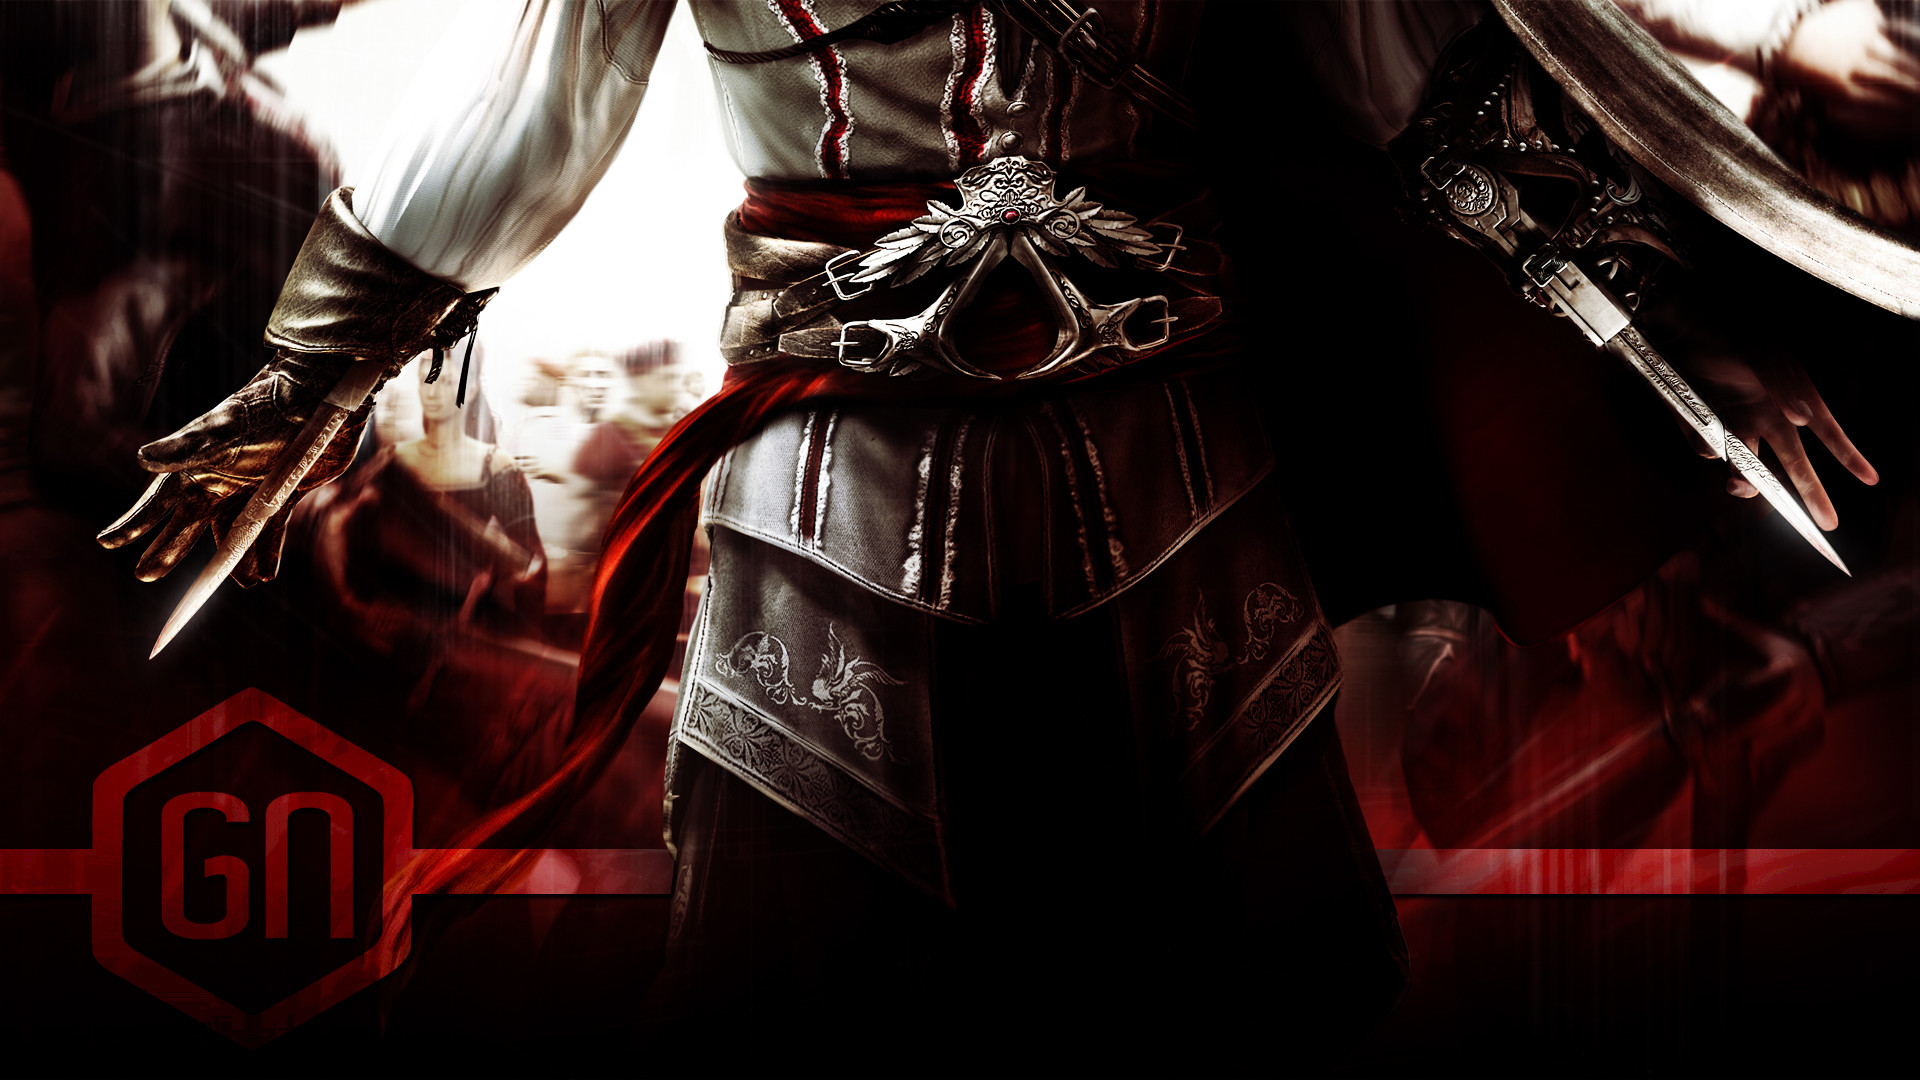 Assassins Creed 2 Wallpaper (82+ Images